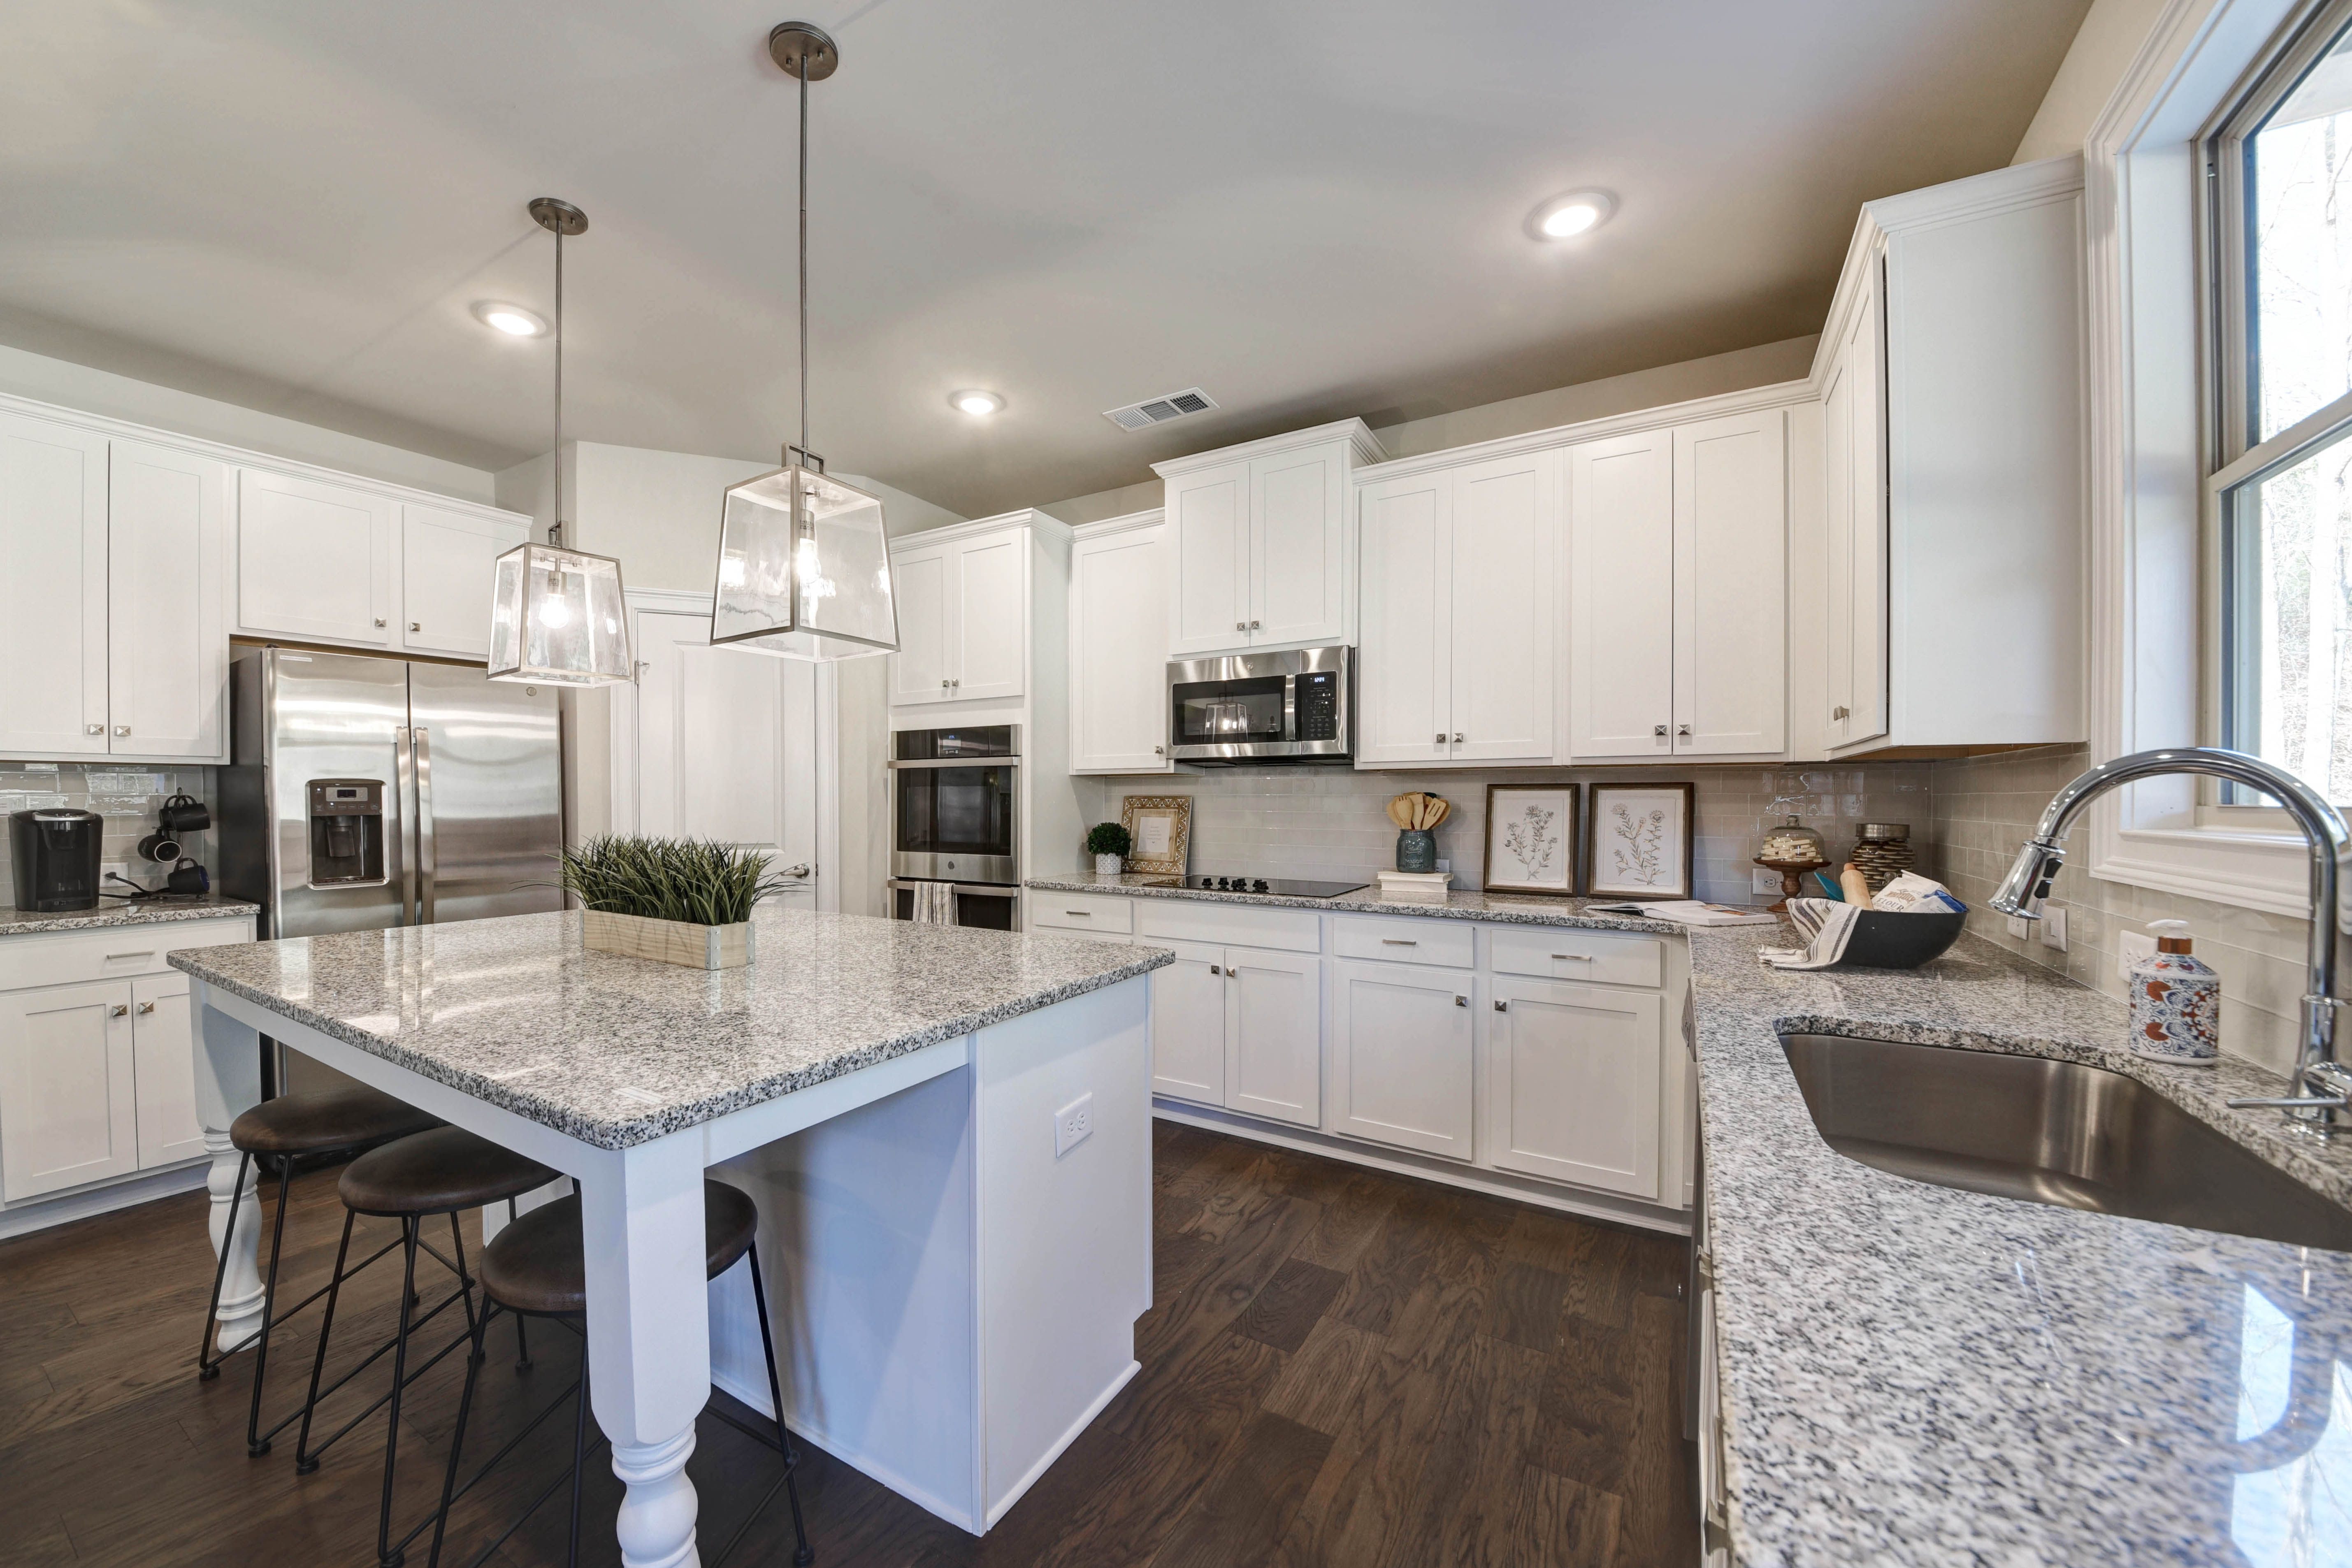 Kitchen featured in The Claire By Almont Homes in Atlanta, GA